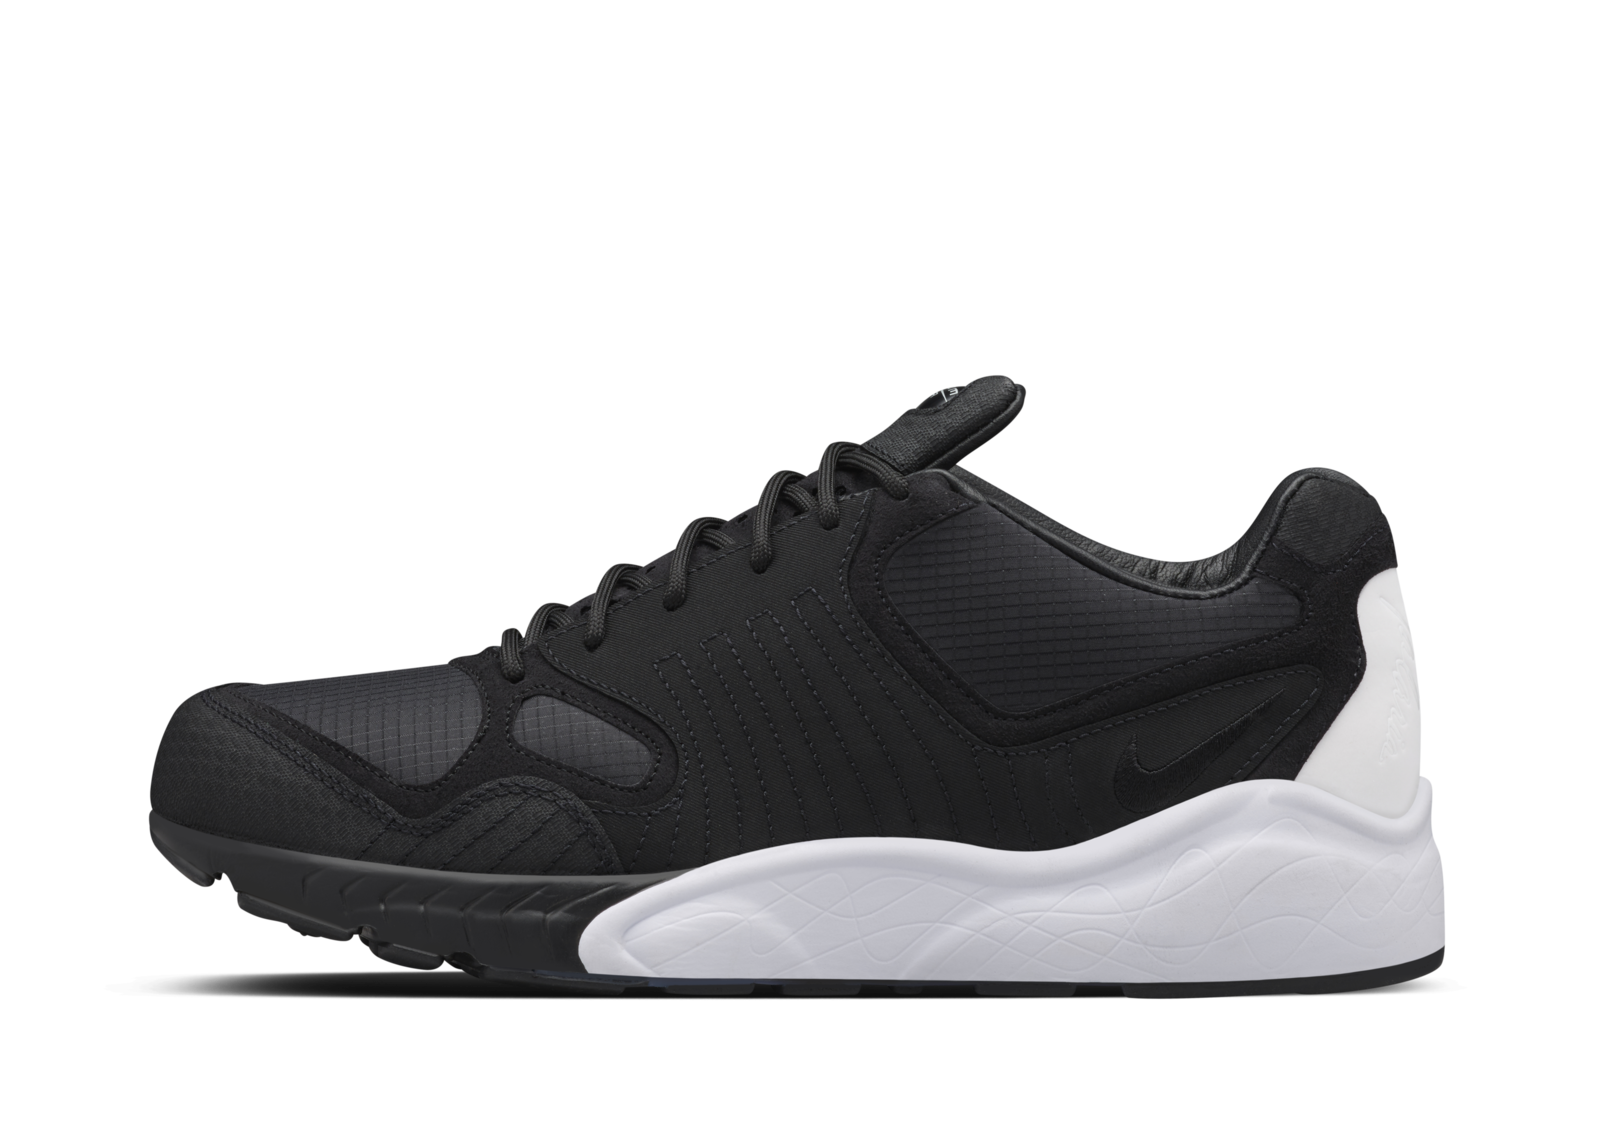 96670e064a6a2 Fast from the Past  The NikeLab Air Zoom Talaria - Nike News